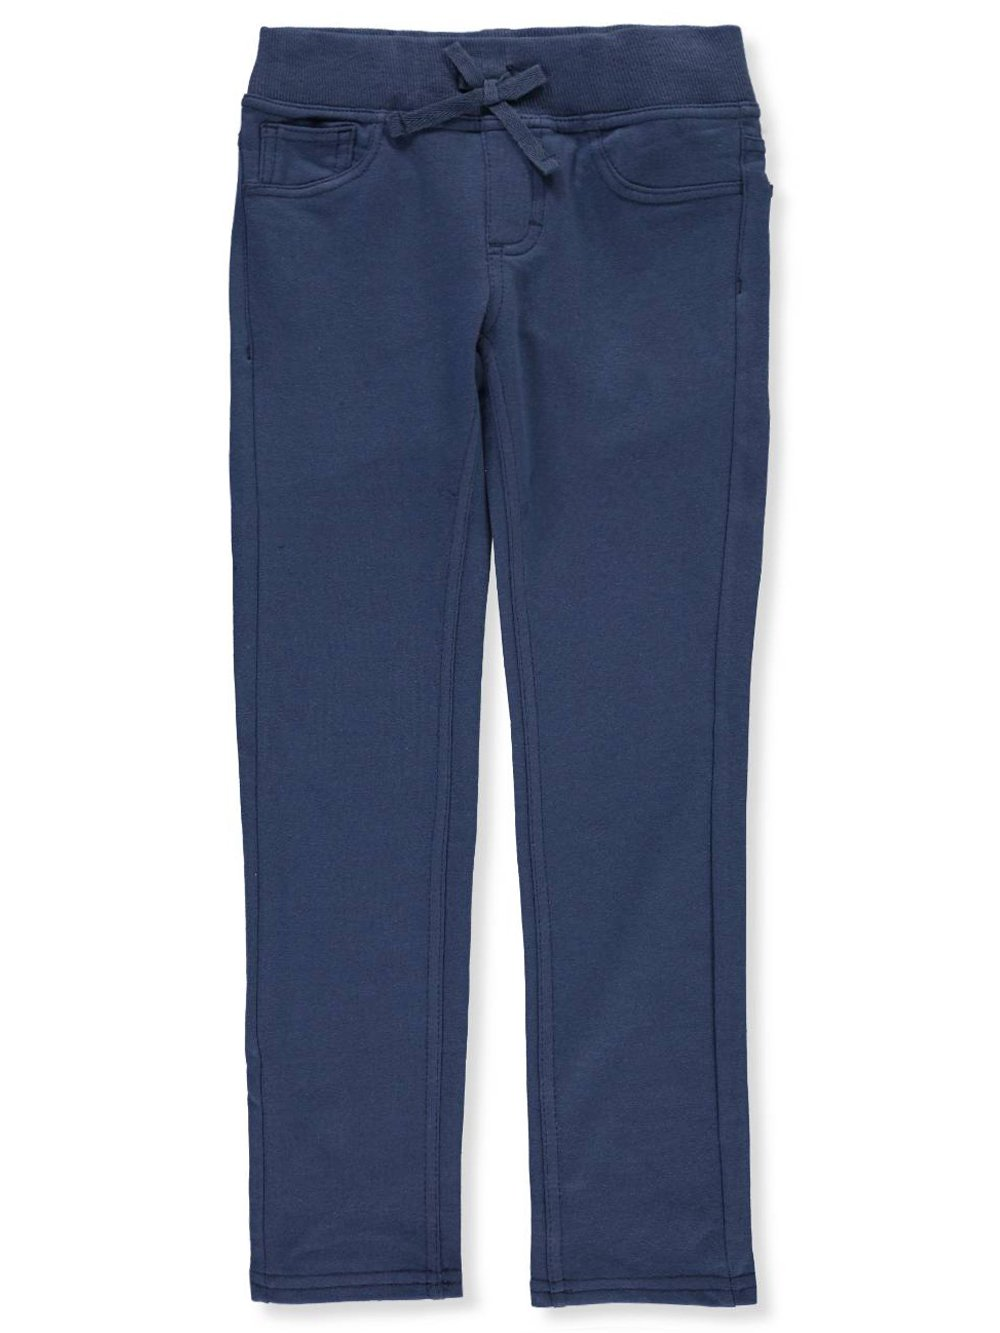 Lee Girls' Stretch Knit Skinny Pants